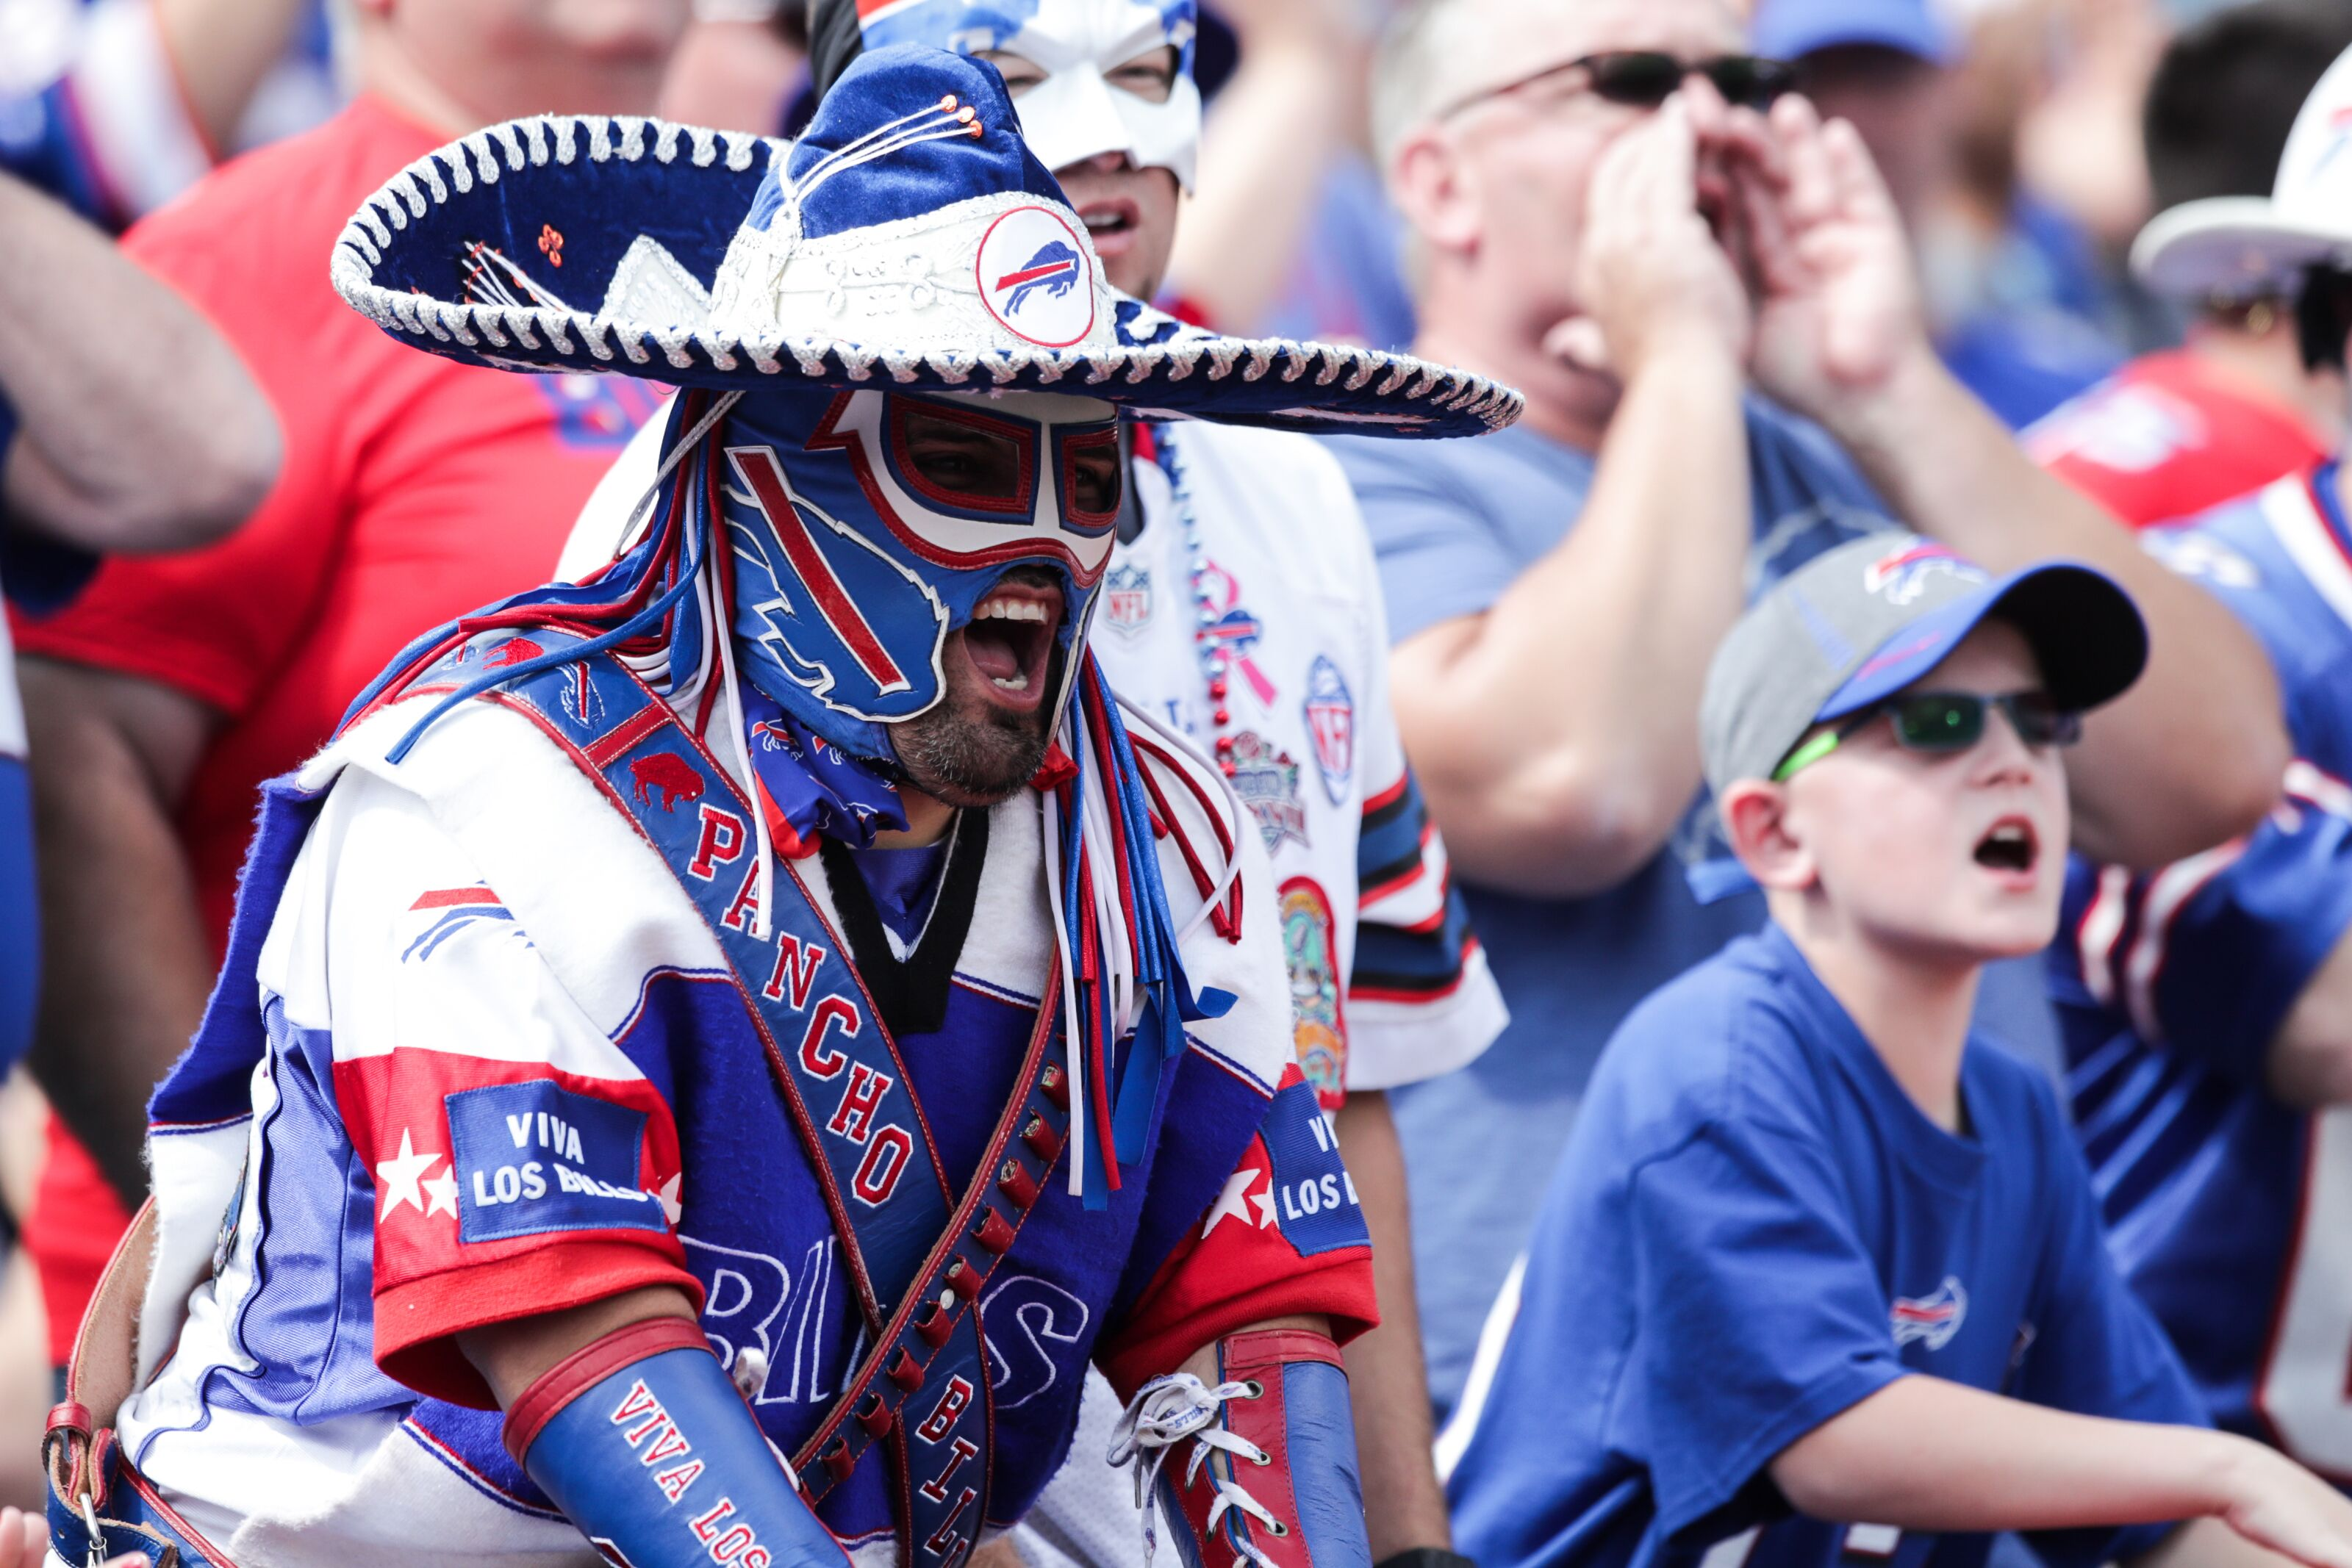 ORCHARD PARK, NY - SEPTEMBER 10: Buffalo Bills fans cheer during the first half against the New York Jets on September 10, 2017 at New Era Field in Orchard Park, New York. (Photo by Brett Carlsen/Getty Images)